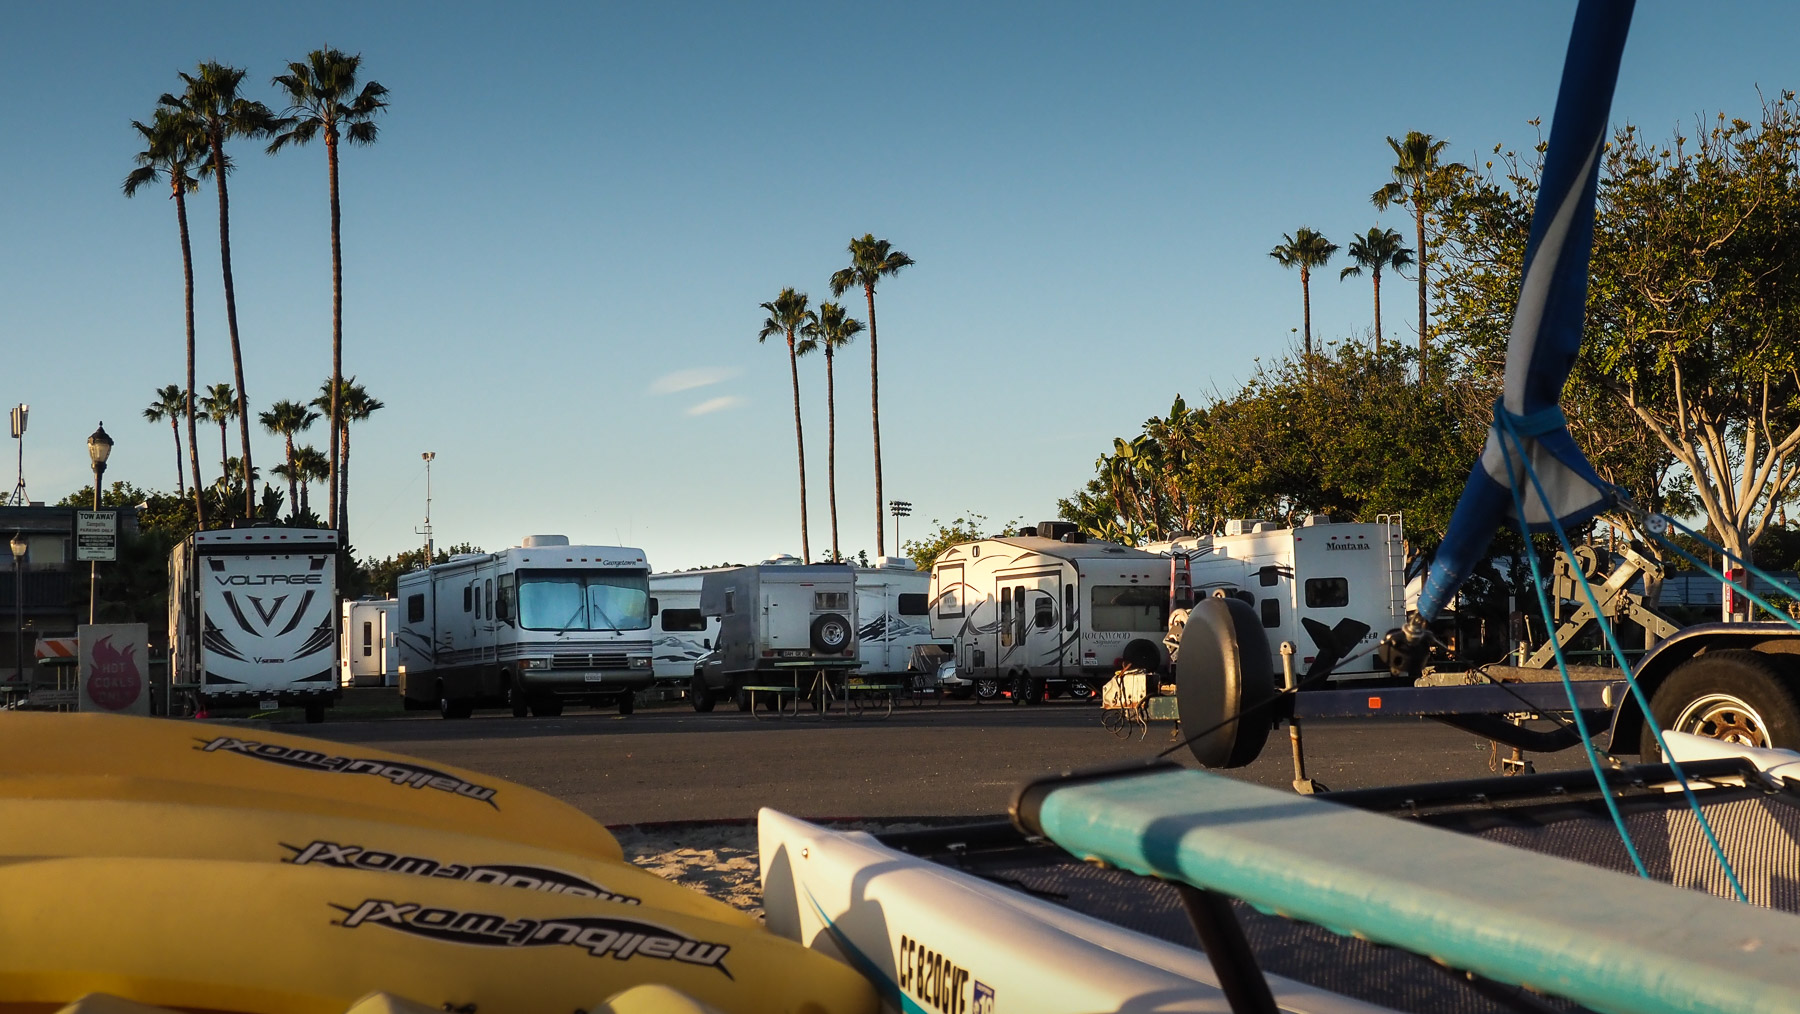 Campland Campground in San Diego